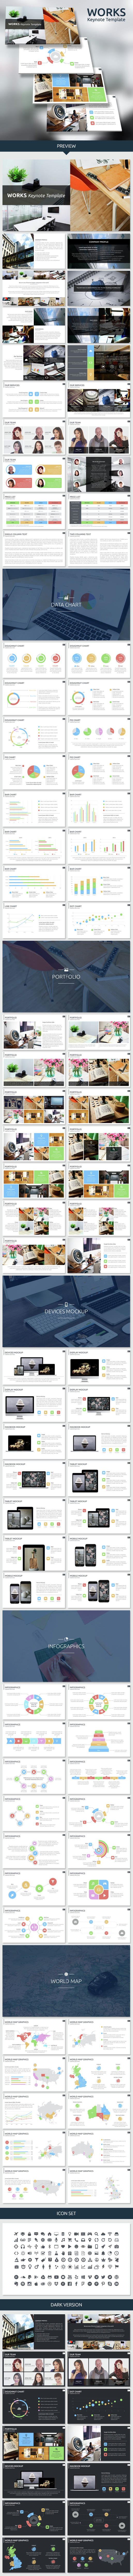 Works Keynote Template - Business Keynote Templates